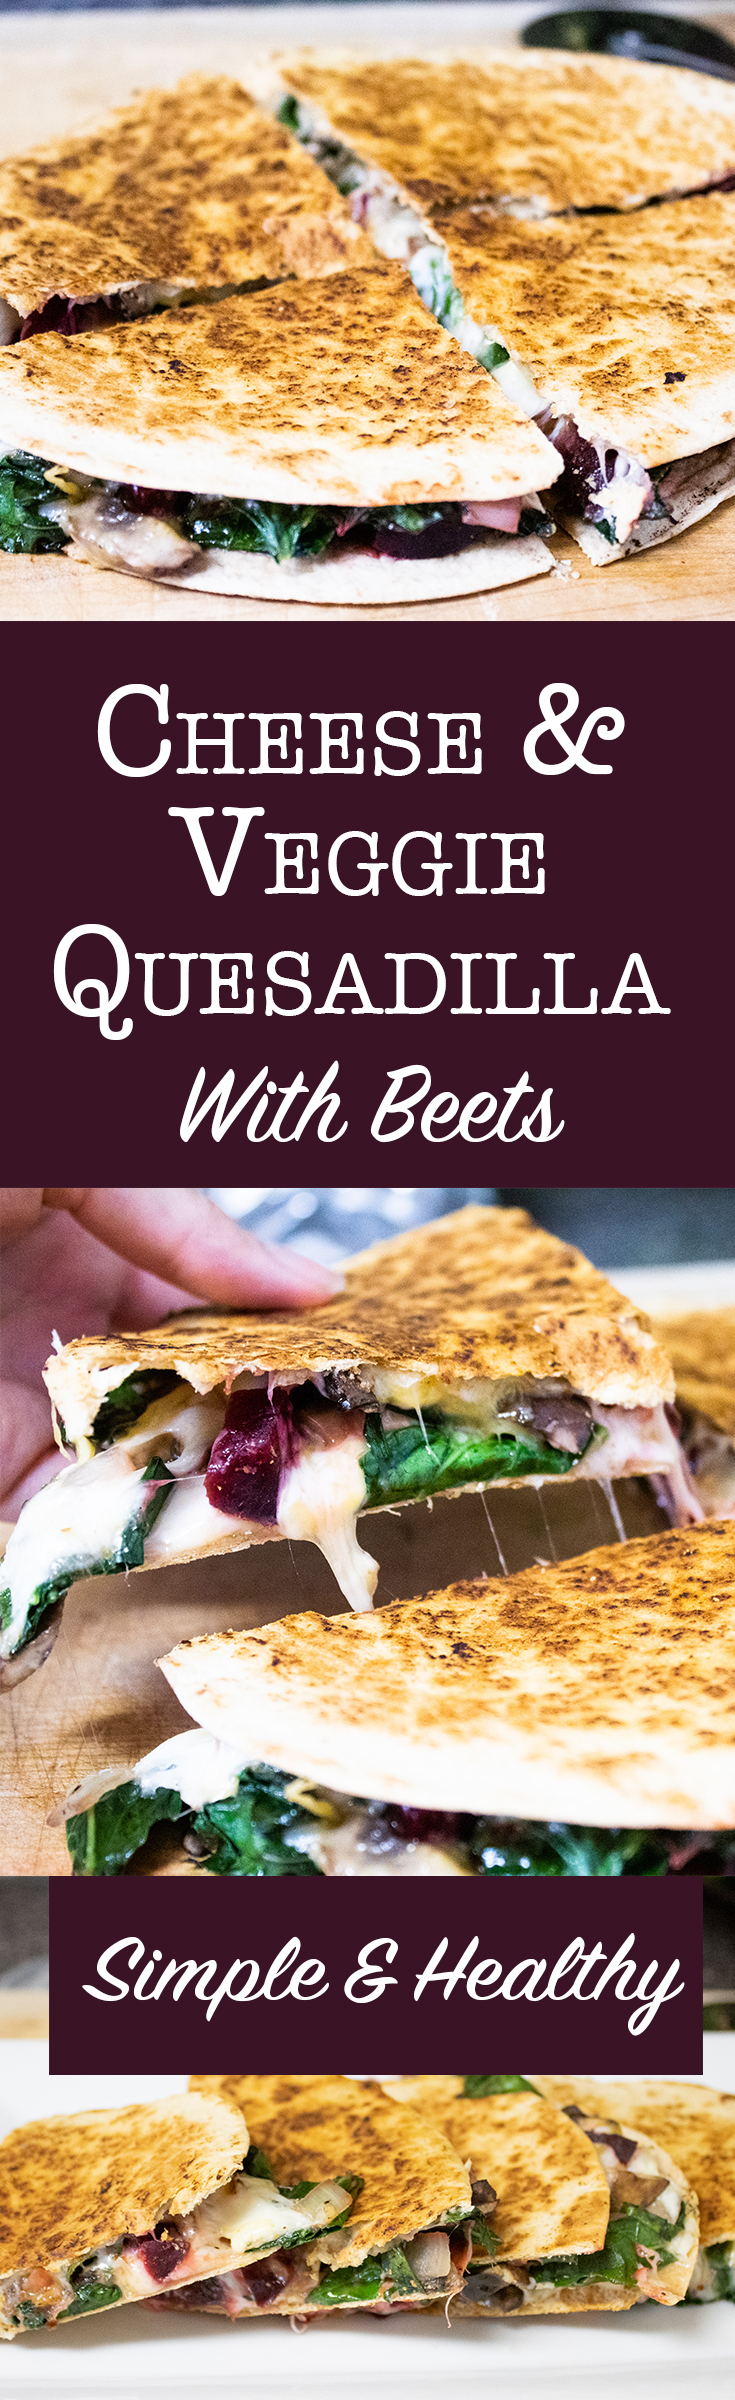 Low calorie vegetable and cheese quesadilla recipe